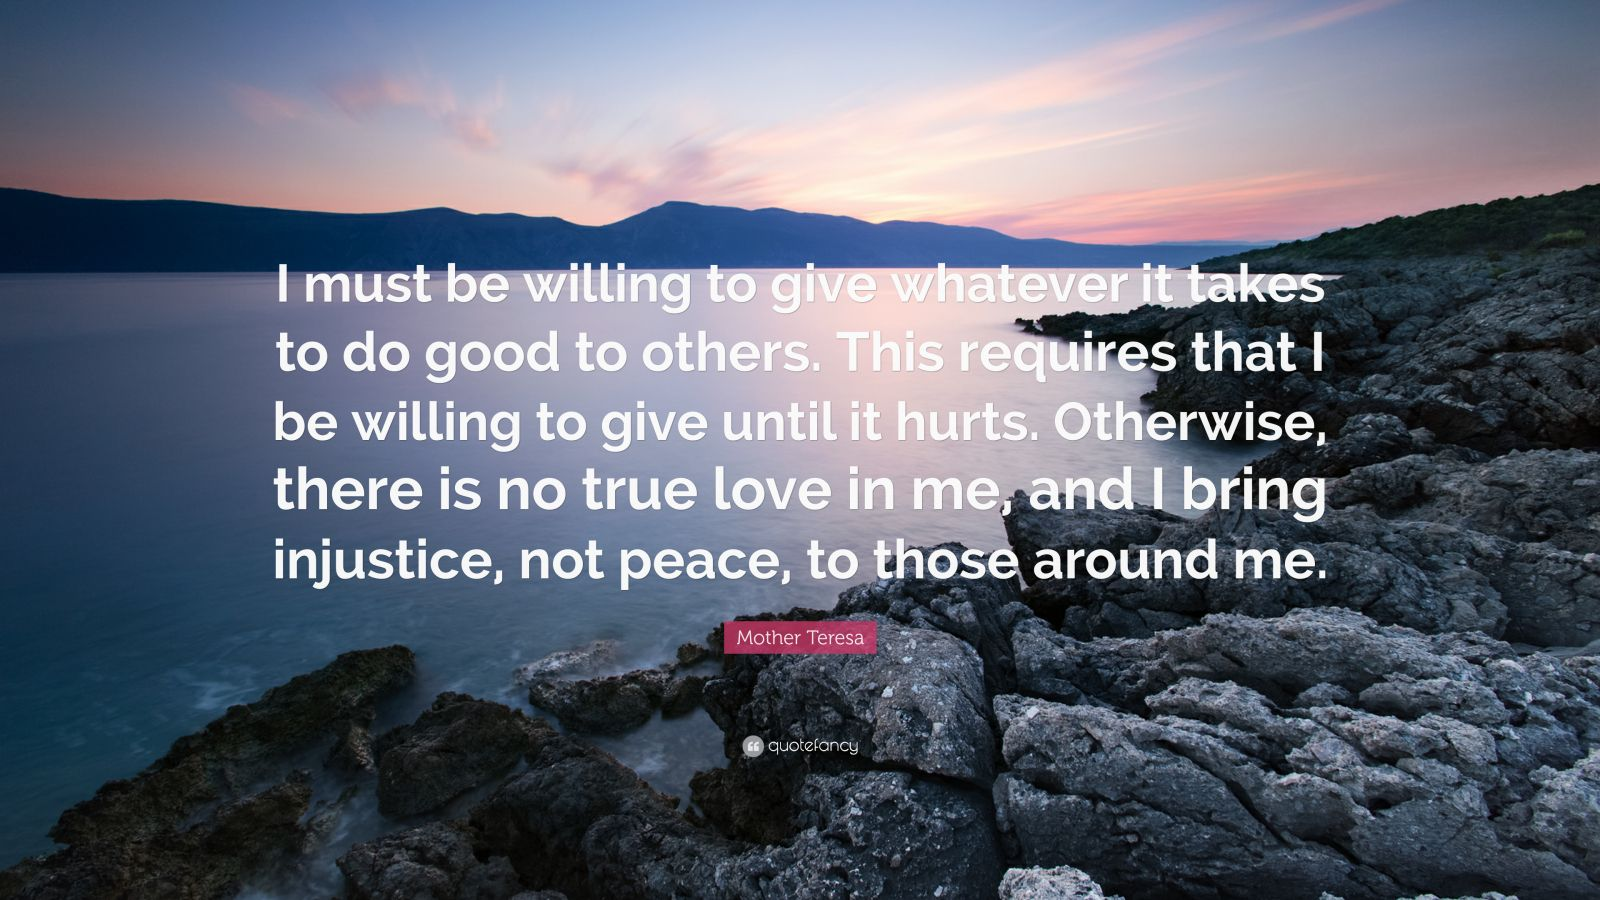 "Mother Teresa Quote: ""I must be willing to give whatever it takes to do good to others. This requires that I be willing to give until it hurts. Otherwise, there is no true love in me, and I bring injustice, not peace, to those around me."""